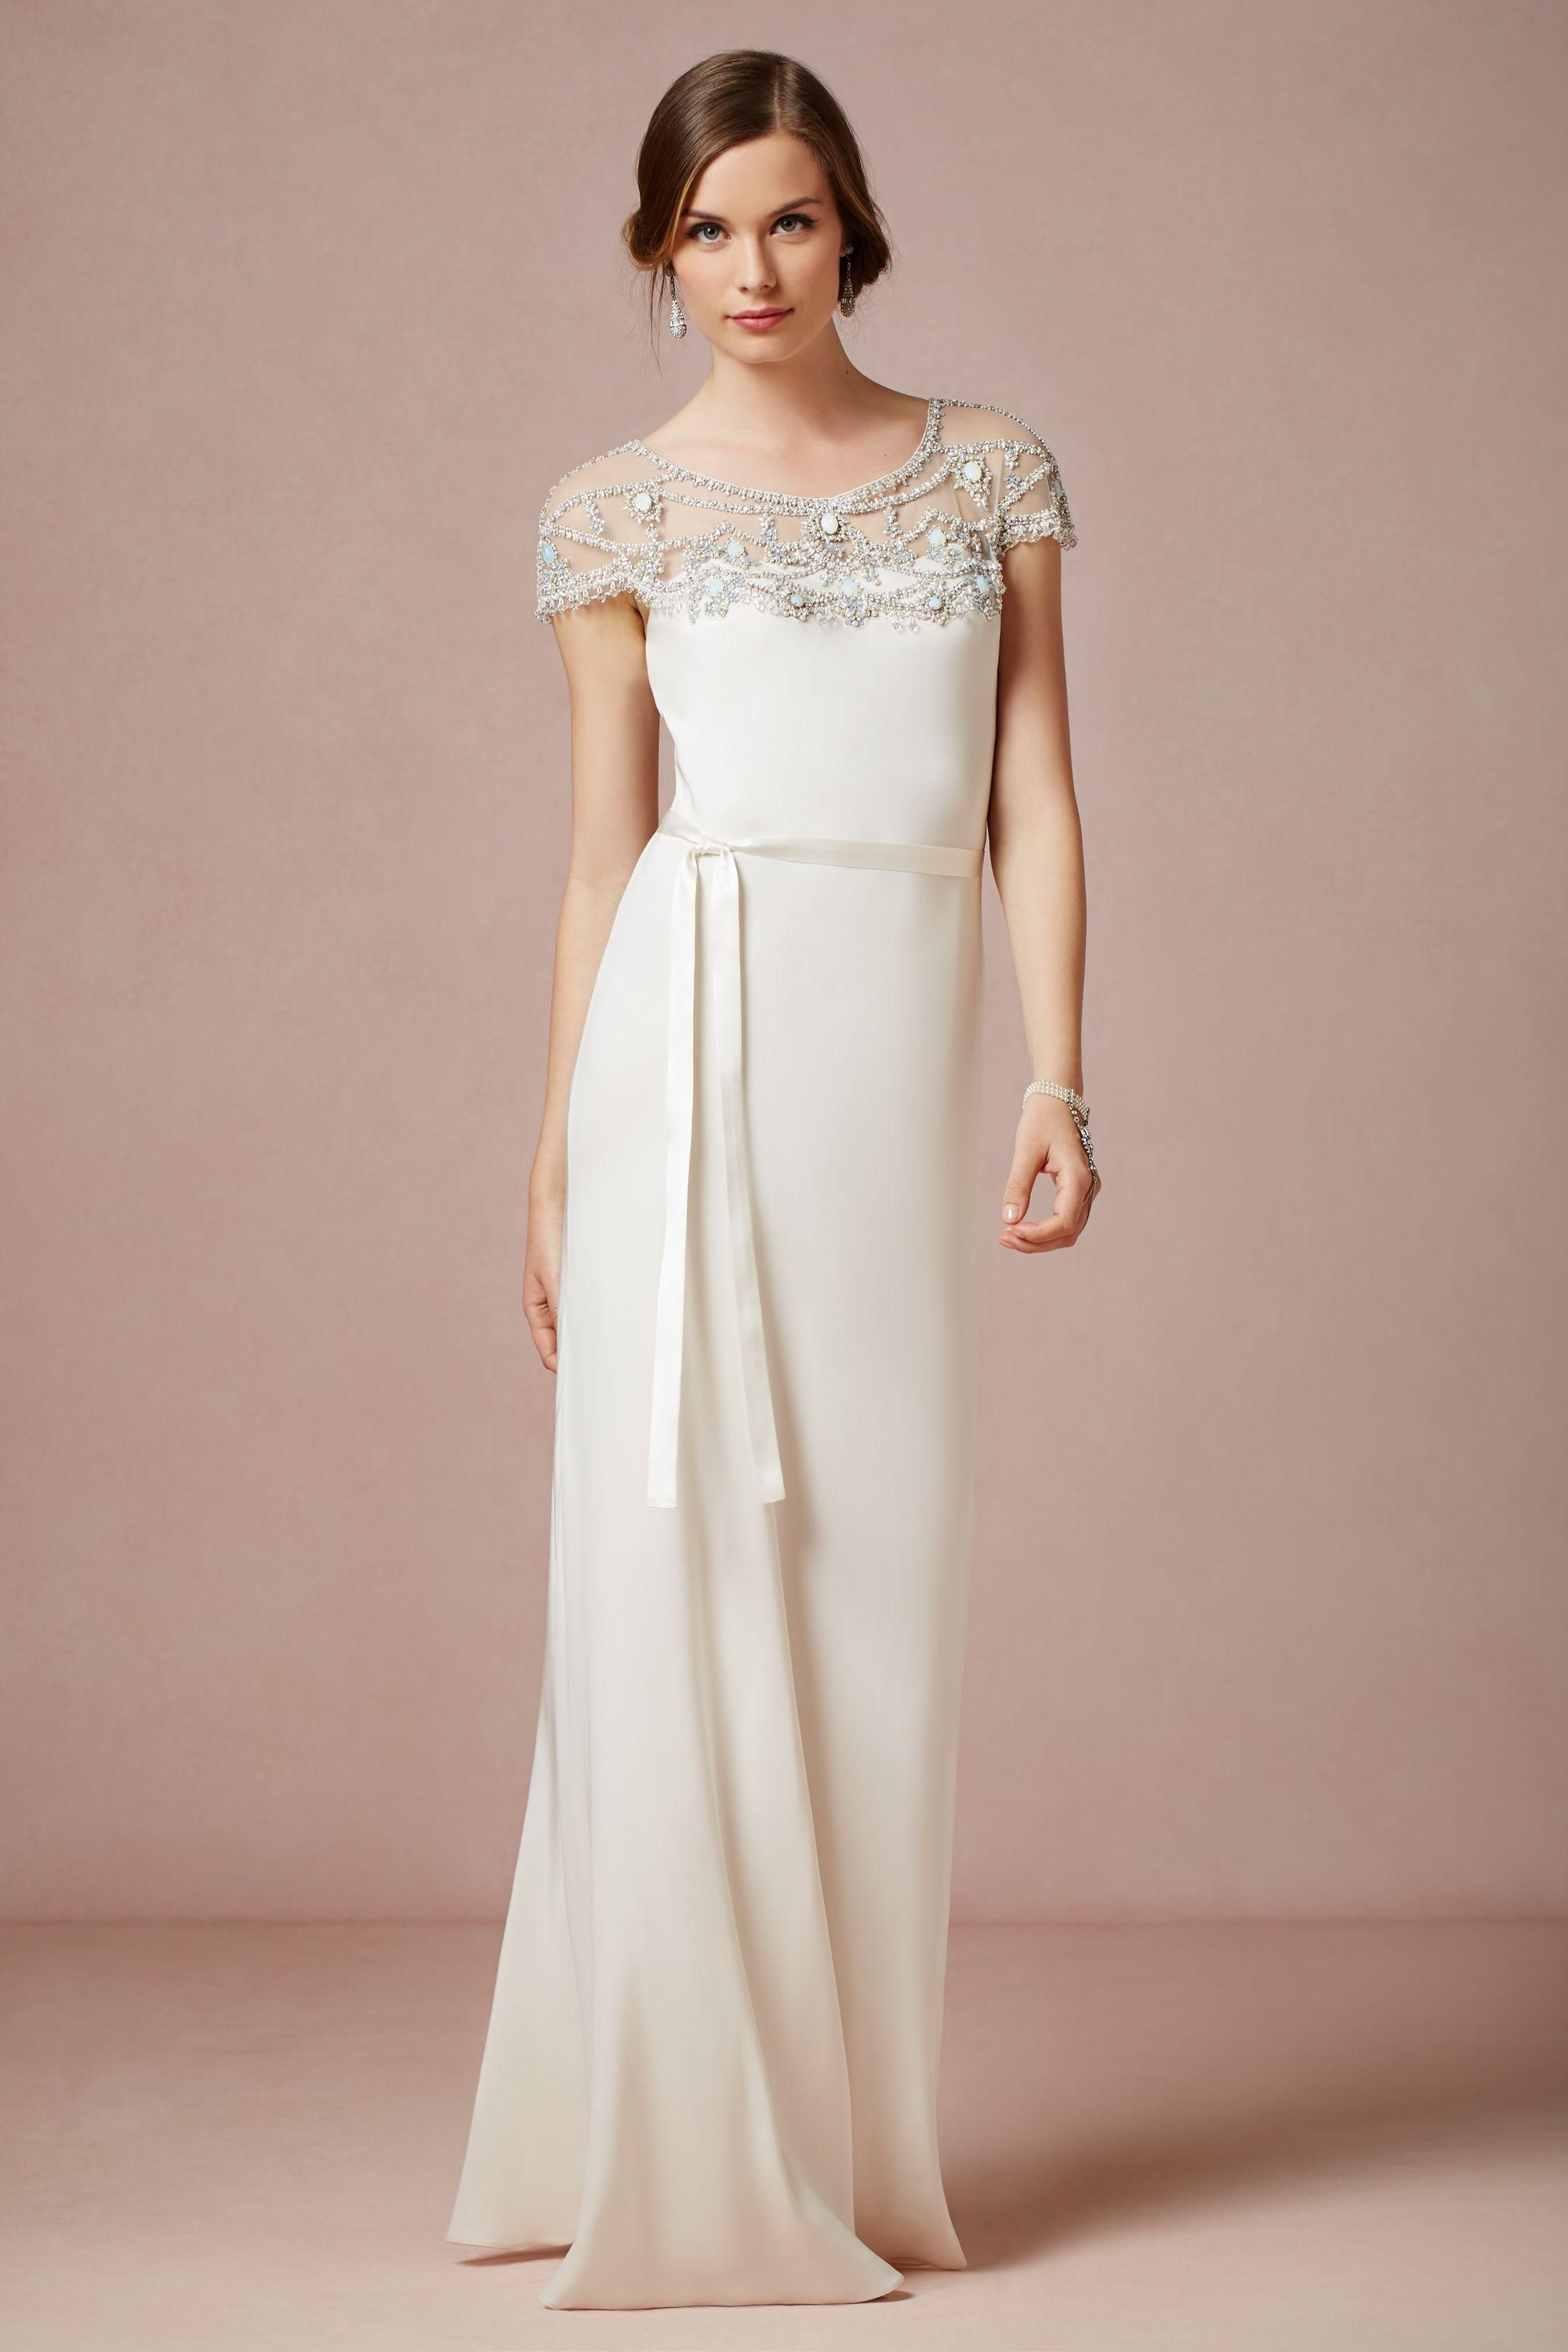 Harlow Gown - BHLDN | Dream Wedding | Pinterest | Novios, Vestiditos ...